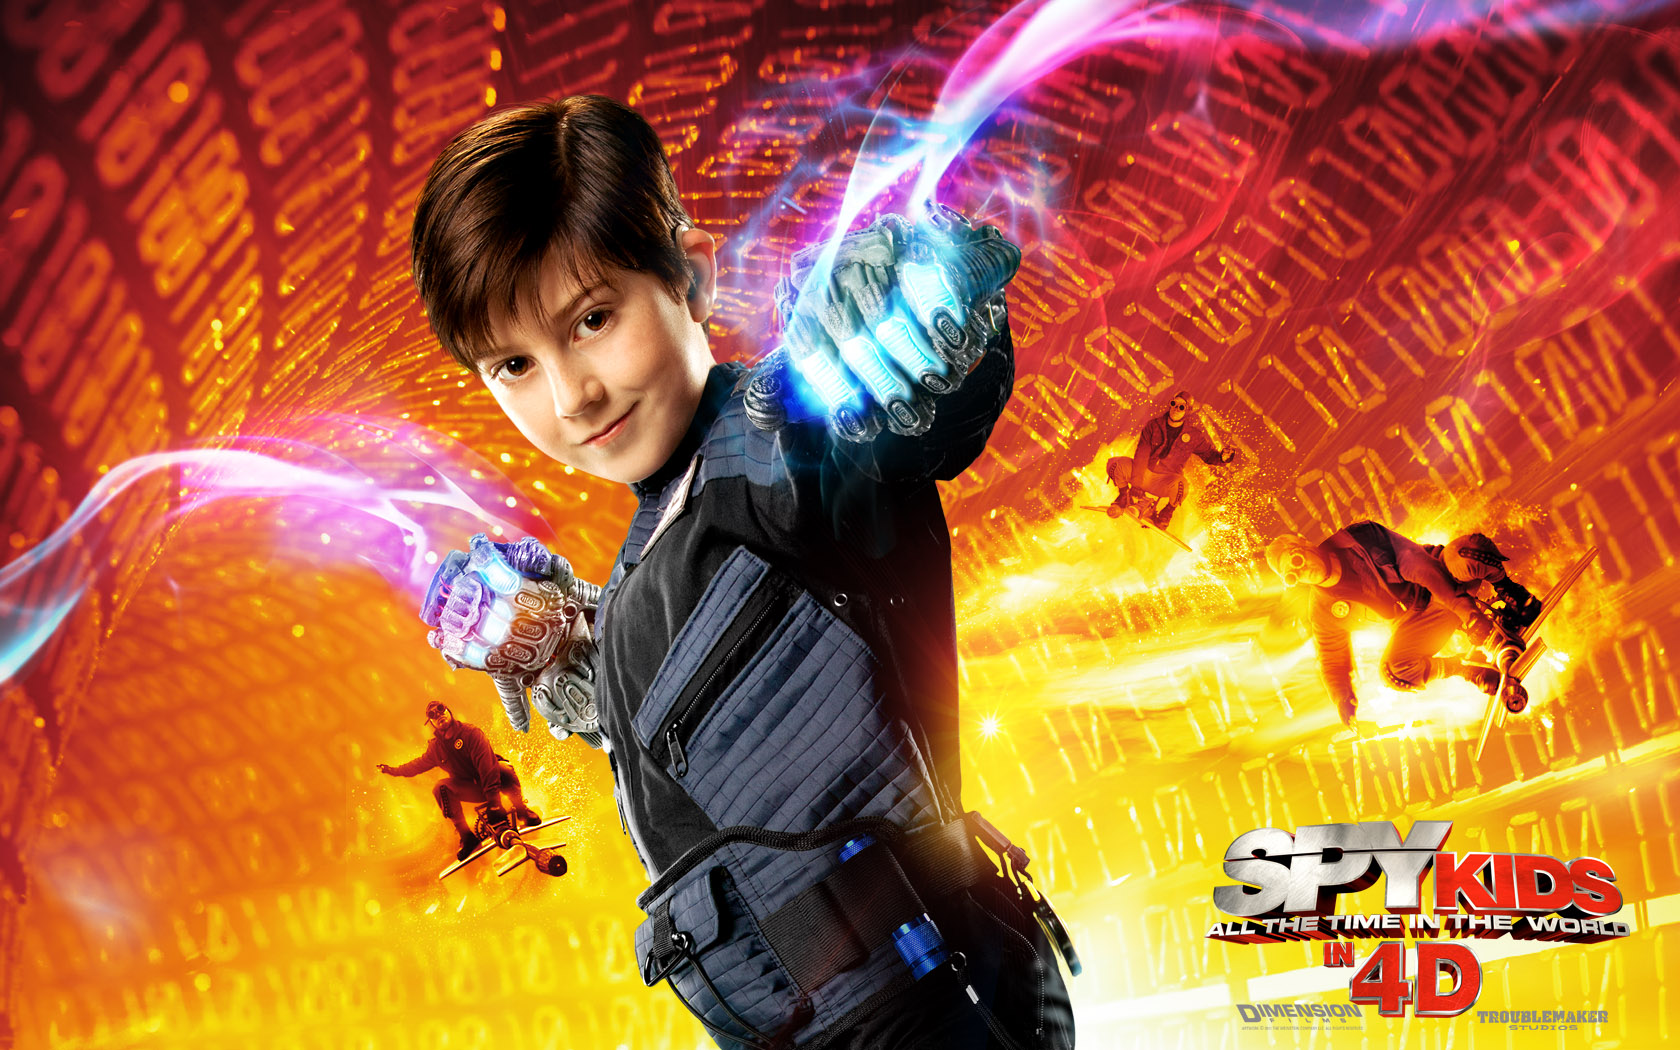 Spy Kids All the Time in the World in 4D Desktop Wallpapers 1680x1050